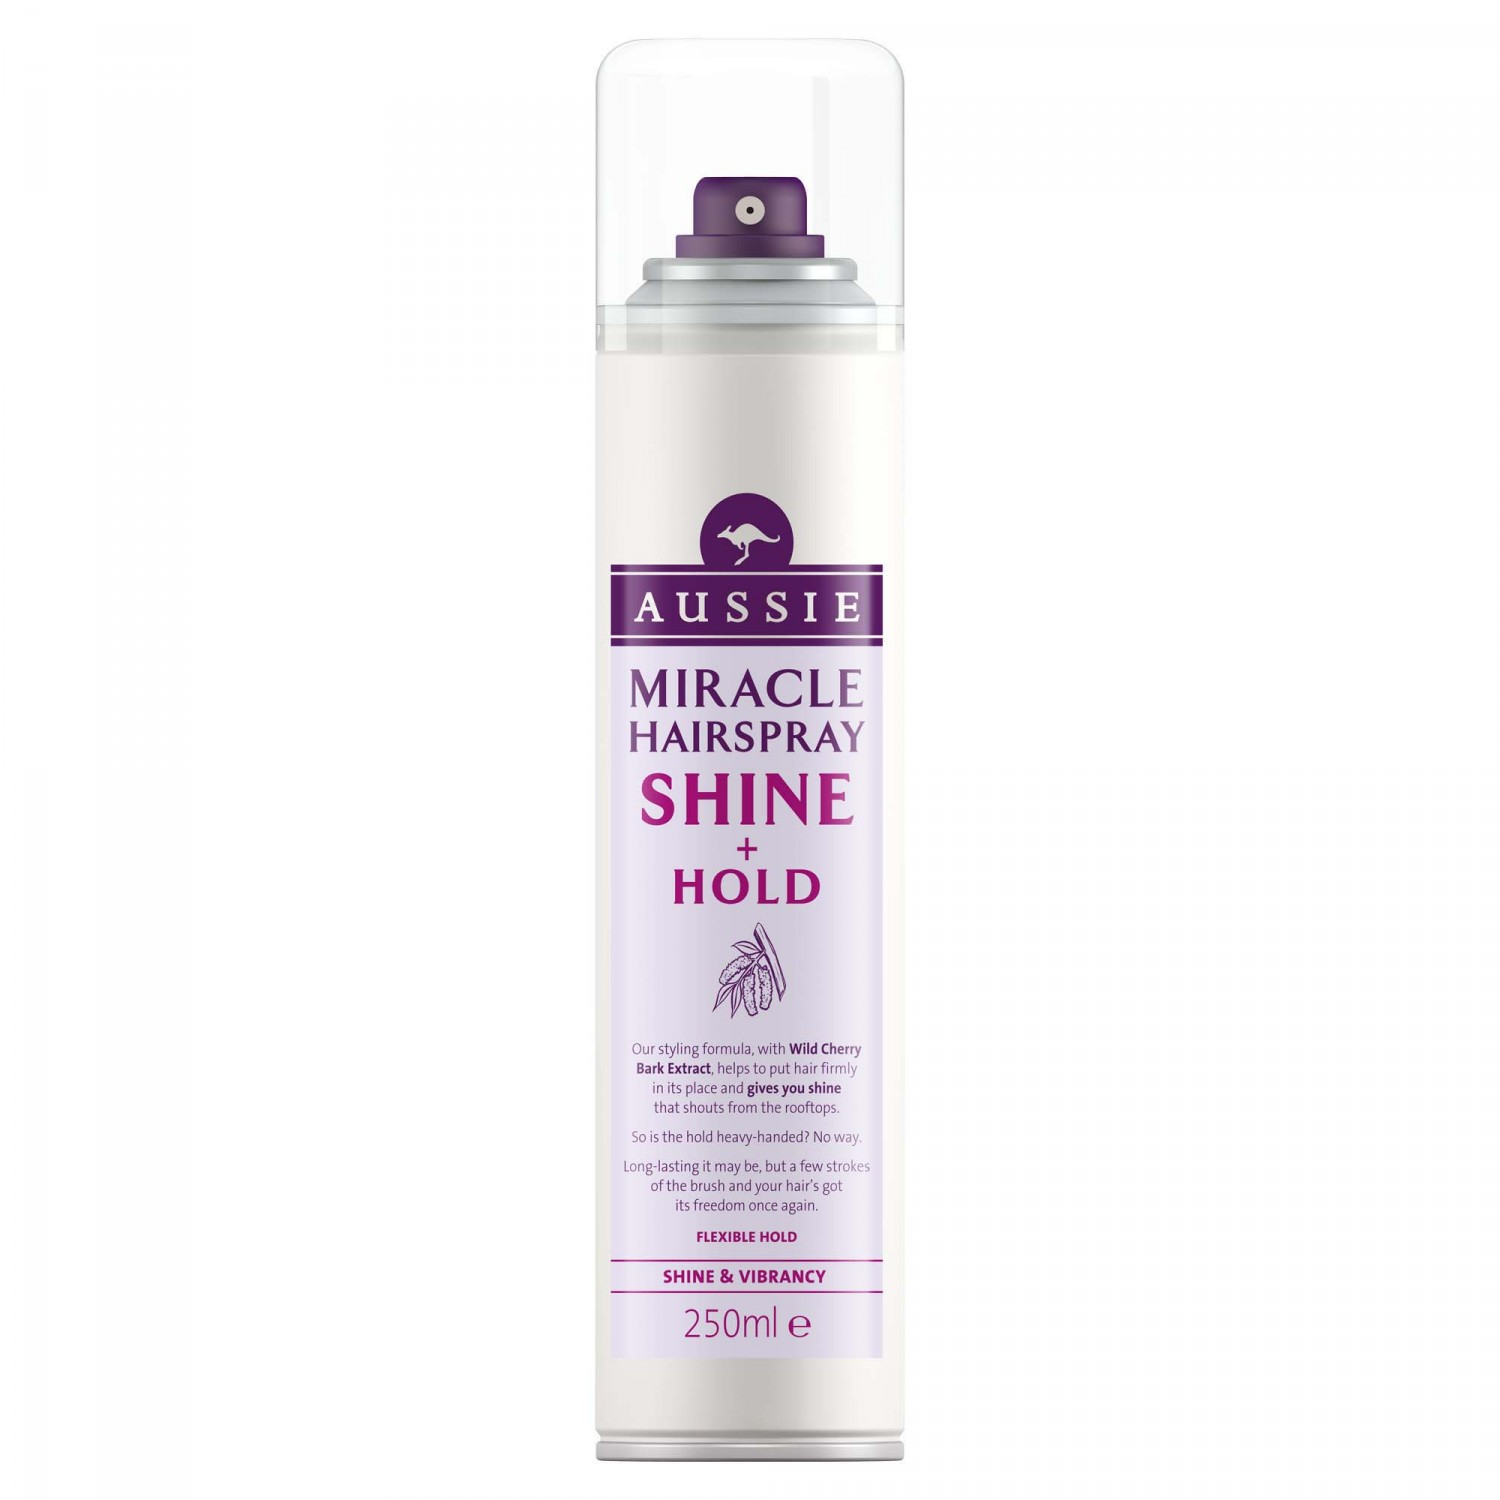 Aussie aussie laca shine hold con extracto cerezo silvestre brillo vitalidad de 25cl. en spray